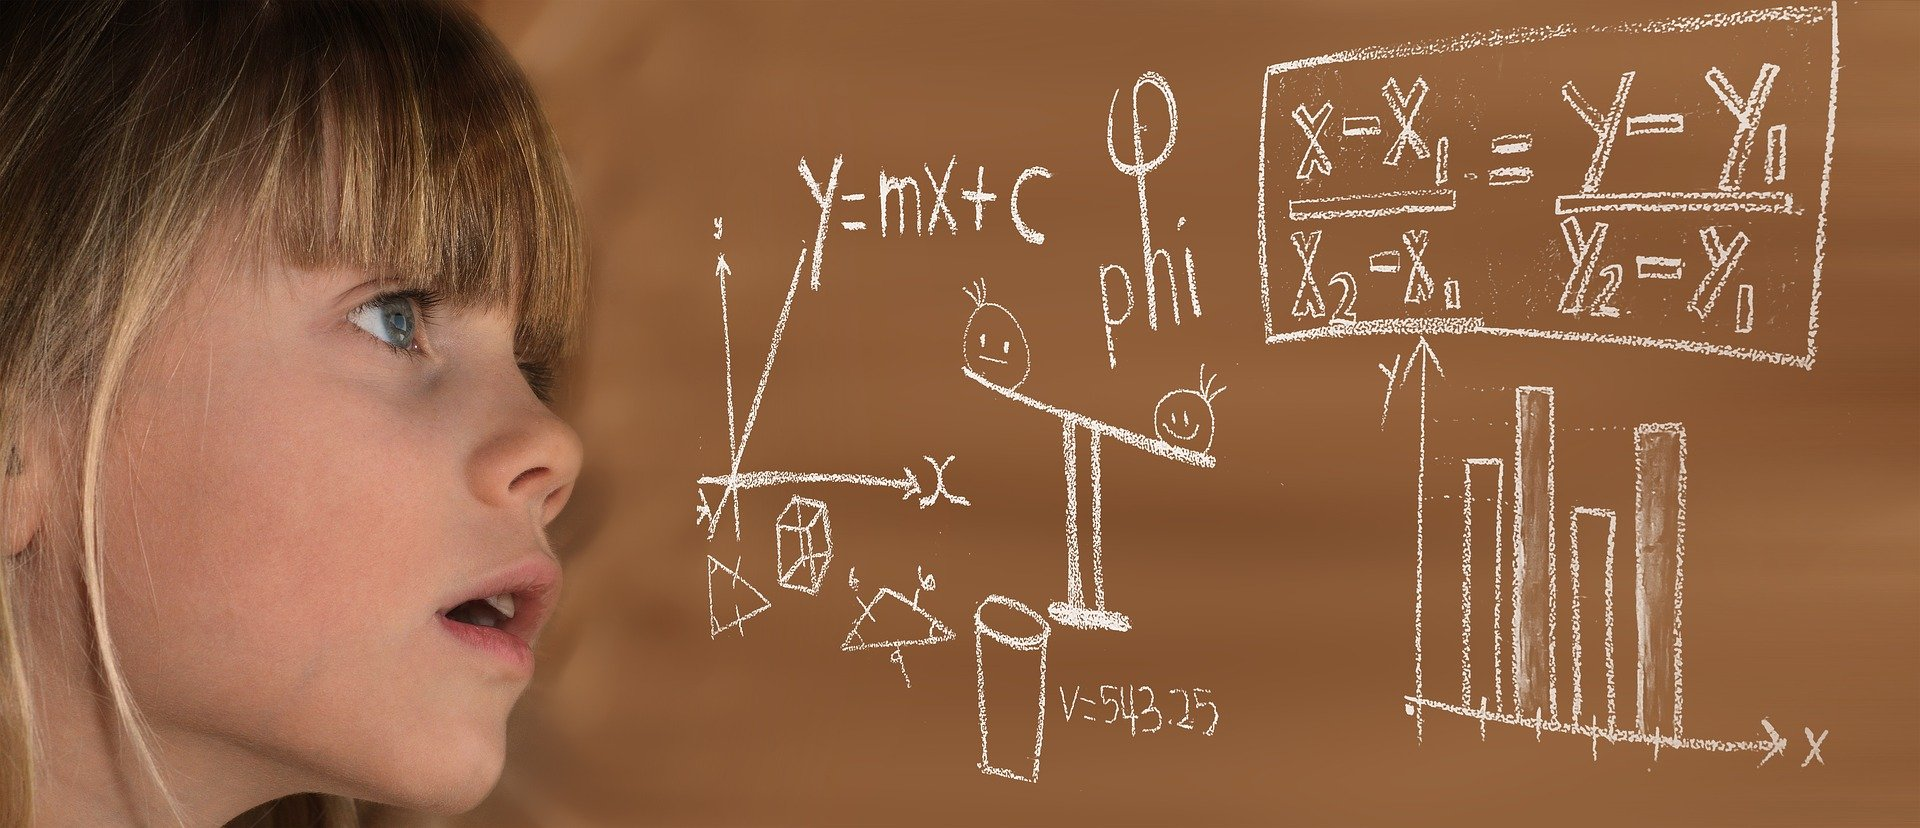 A young child looks at a maths problem written on a blackboard. | Source: Pixabay.